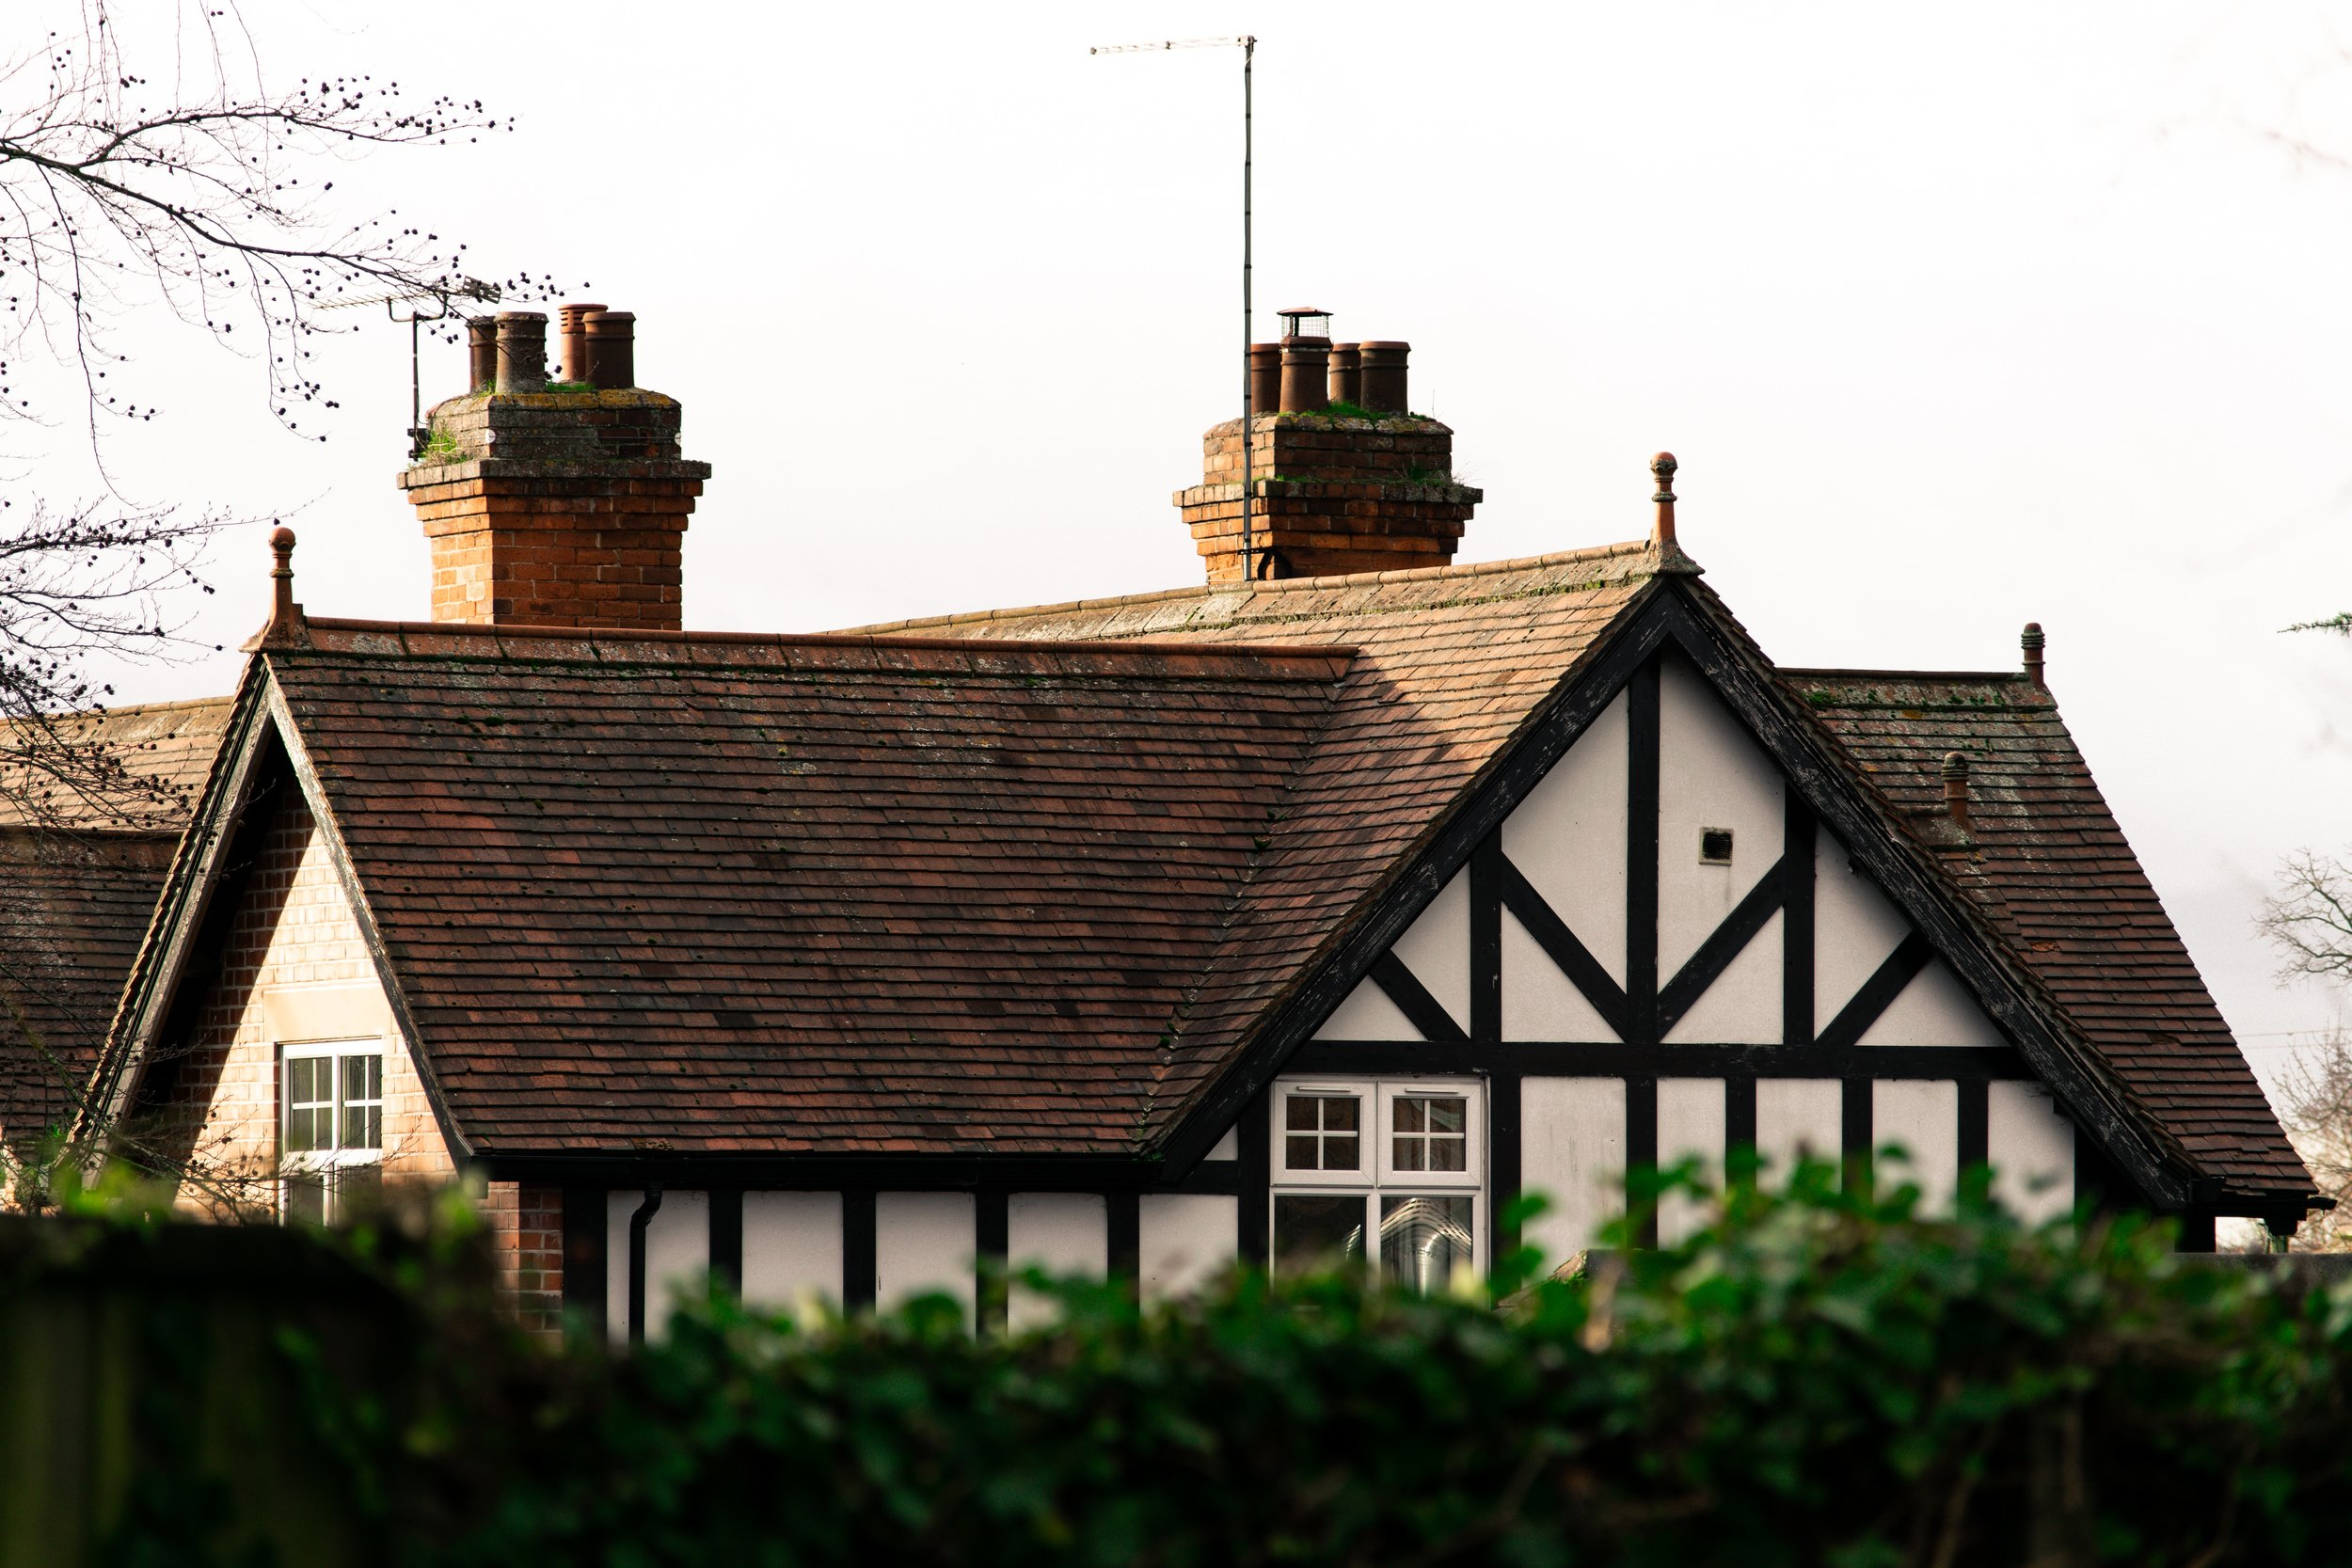 roof-inspection-cedar-shake-shingles-how-to-fo-roof-inspection.jpg